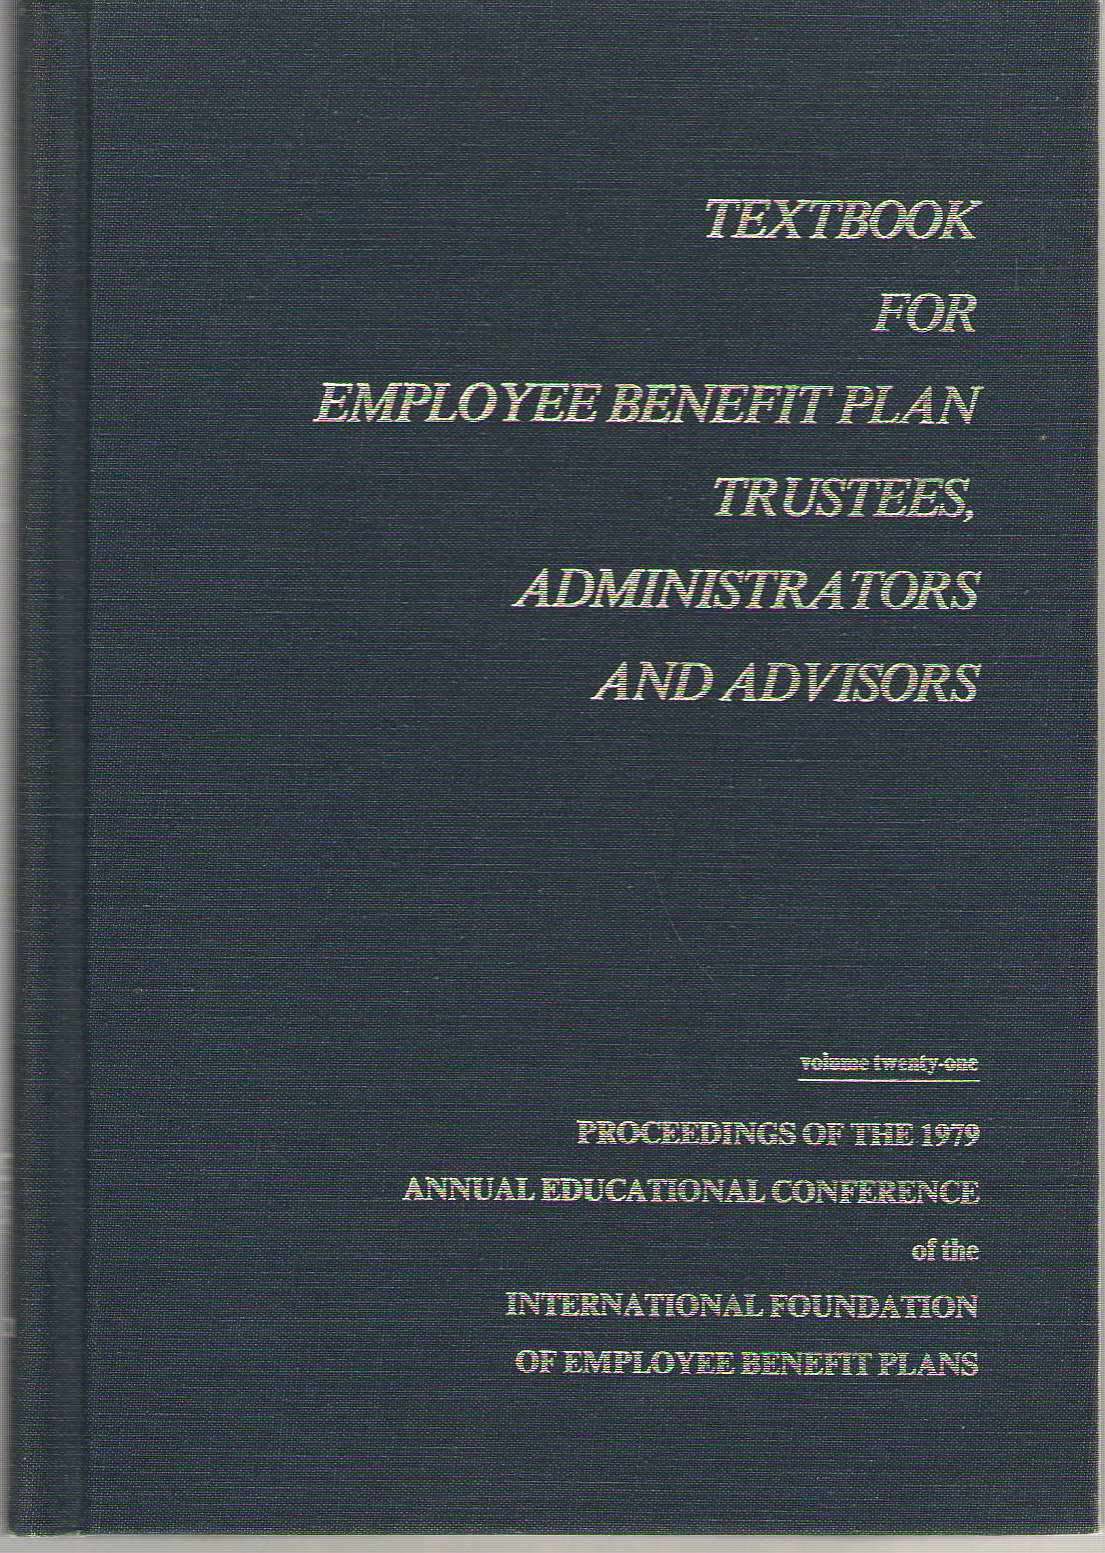 Textbook For Employee Benefit Plan Trustees, Administrators And Advisors Proceedings of the 1979 Annual Educational Conference, Hieb, Elizabeth A.